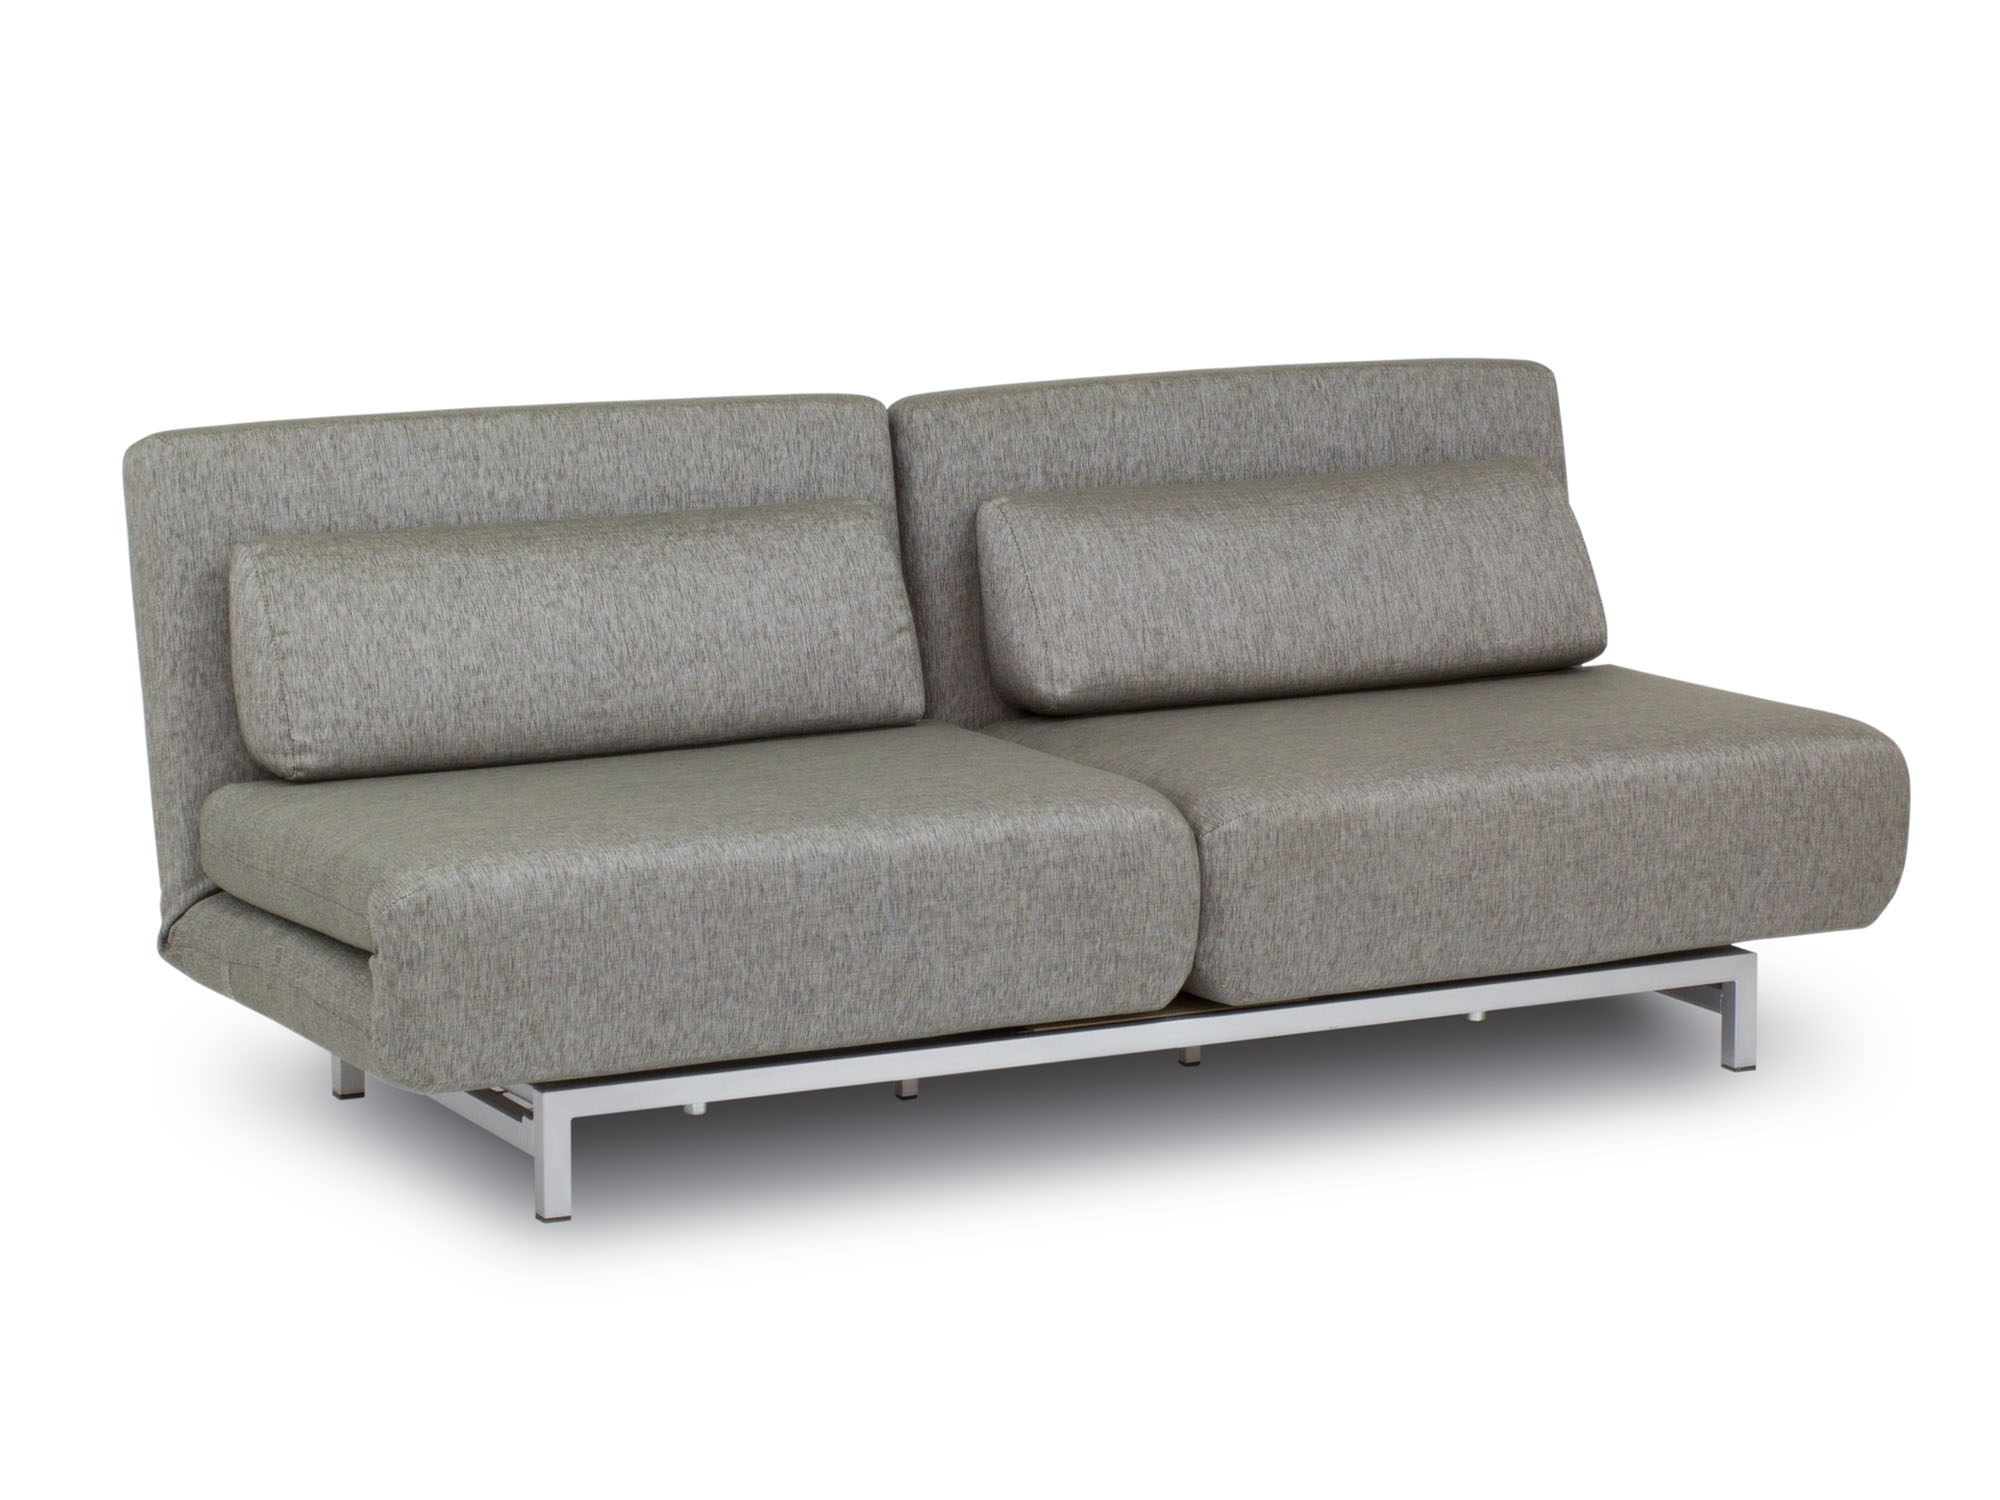 58 Single Seat Sofa Bed Chair Looks Like An Oversized Single For Sofa Bed Chairs (Image 4 of 15)